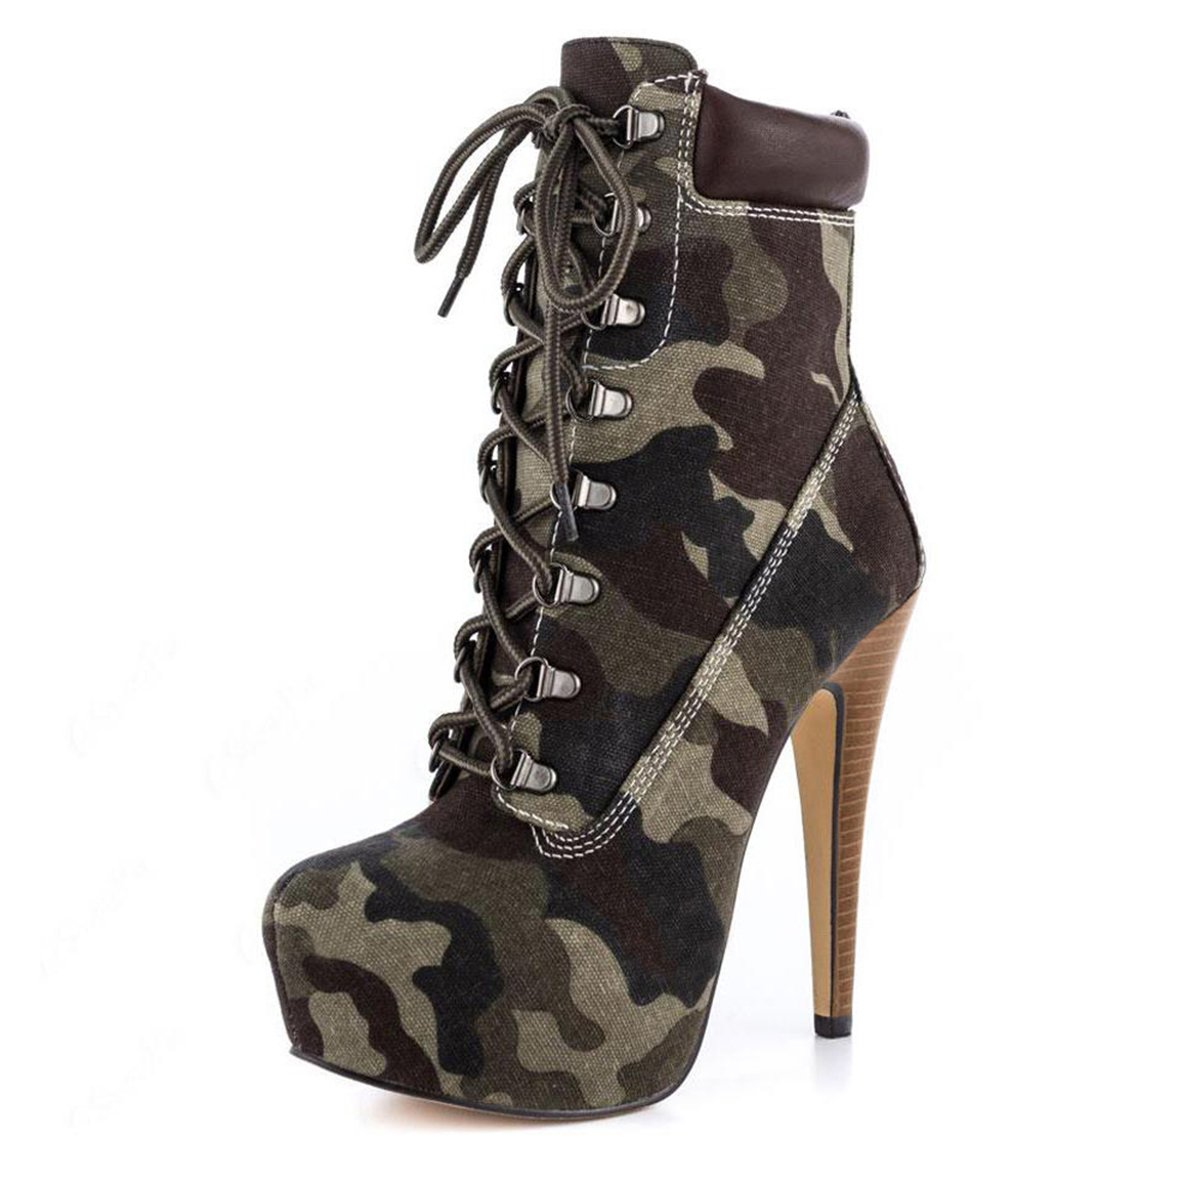 onlymaker Women's Rivet Studded Platform High Heel Pointed Toe Lace up Ankle Boots B013FLW878 15 B(M) US|Dark Camouflage